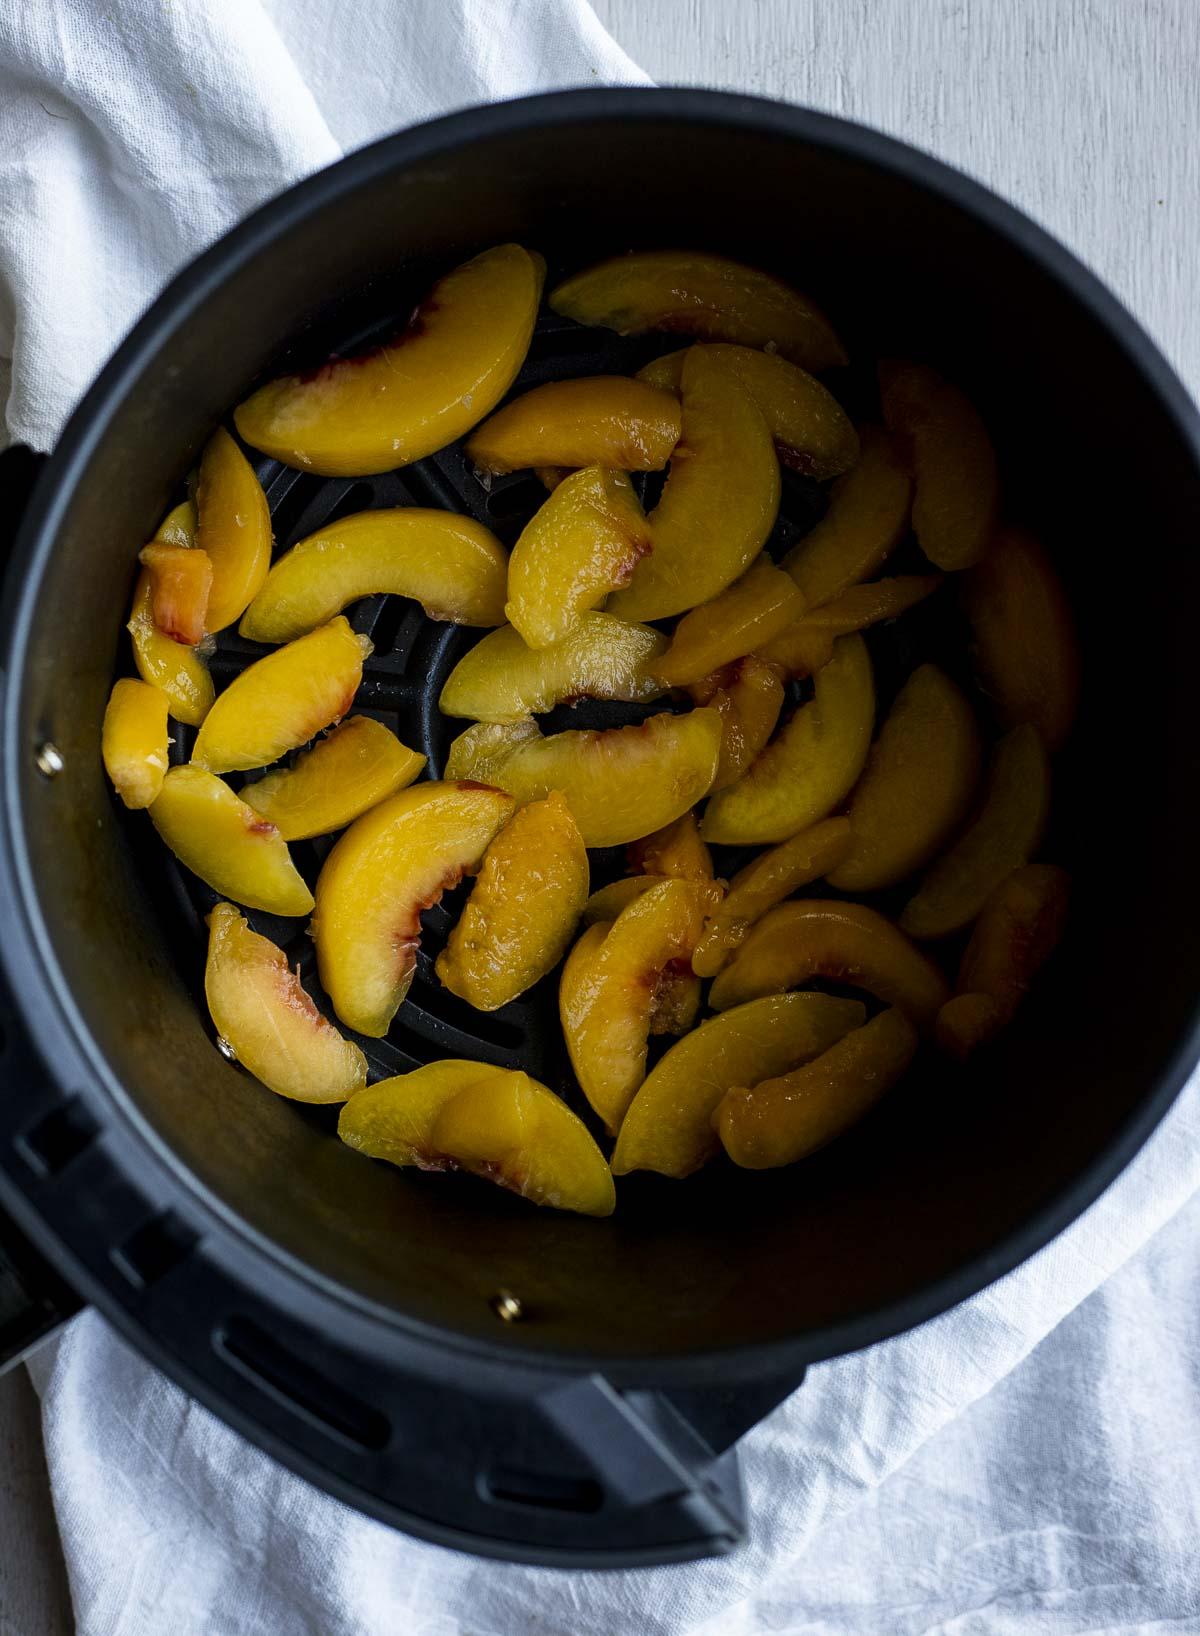 Peach slices arranged in a single layer in an air fryer basket.